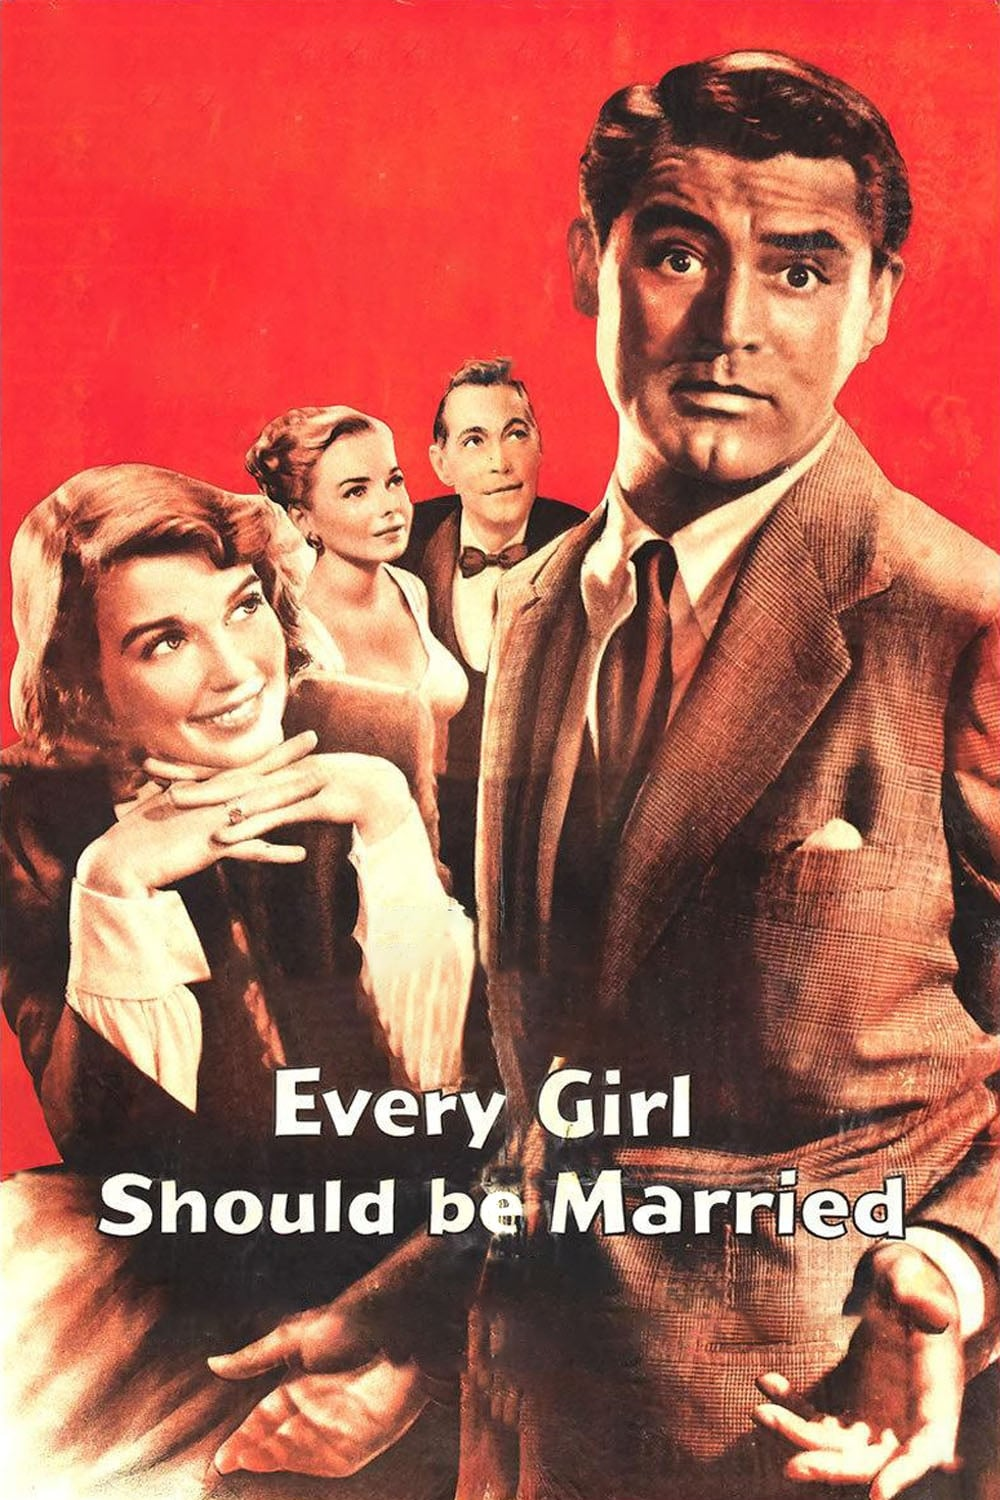 Every Girl Should Be Married (1948)